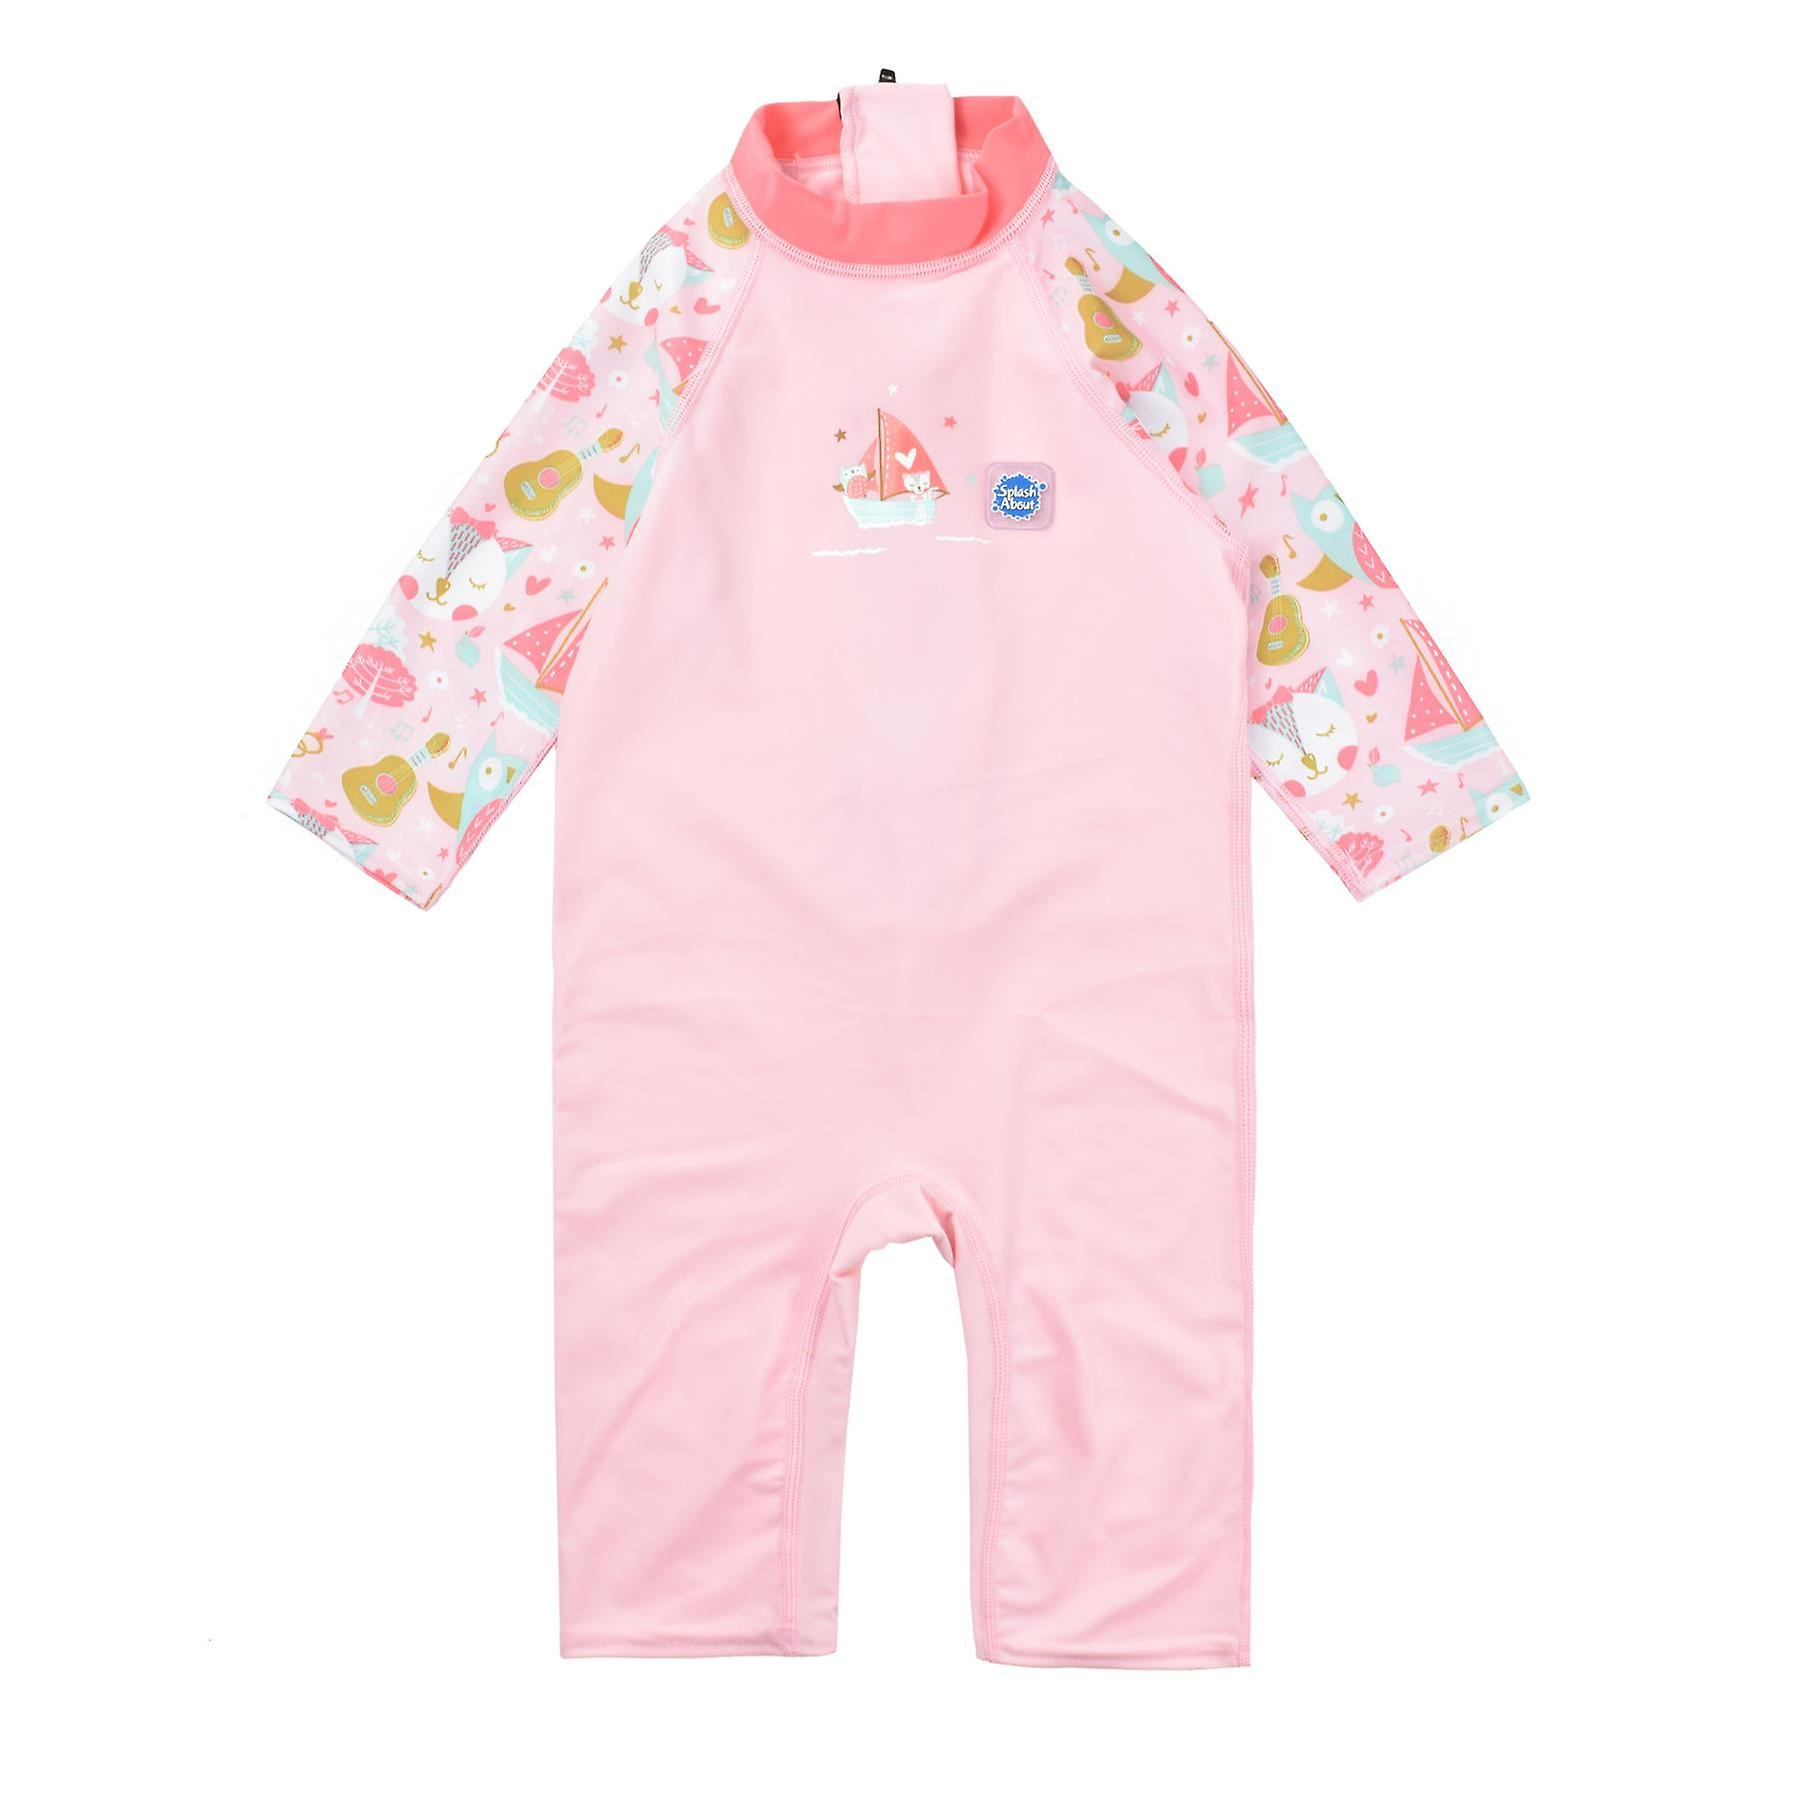 Splash About Toddler 3/4 Length UV Sunsuit  | Owl and The Pussycat